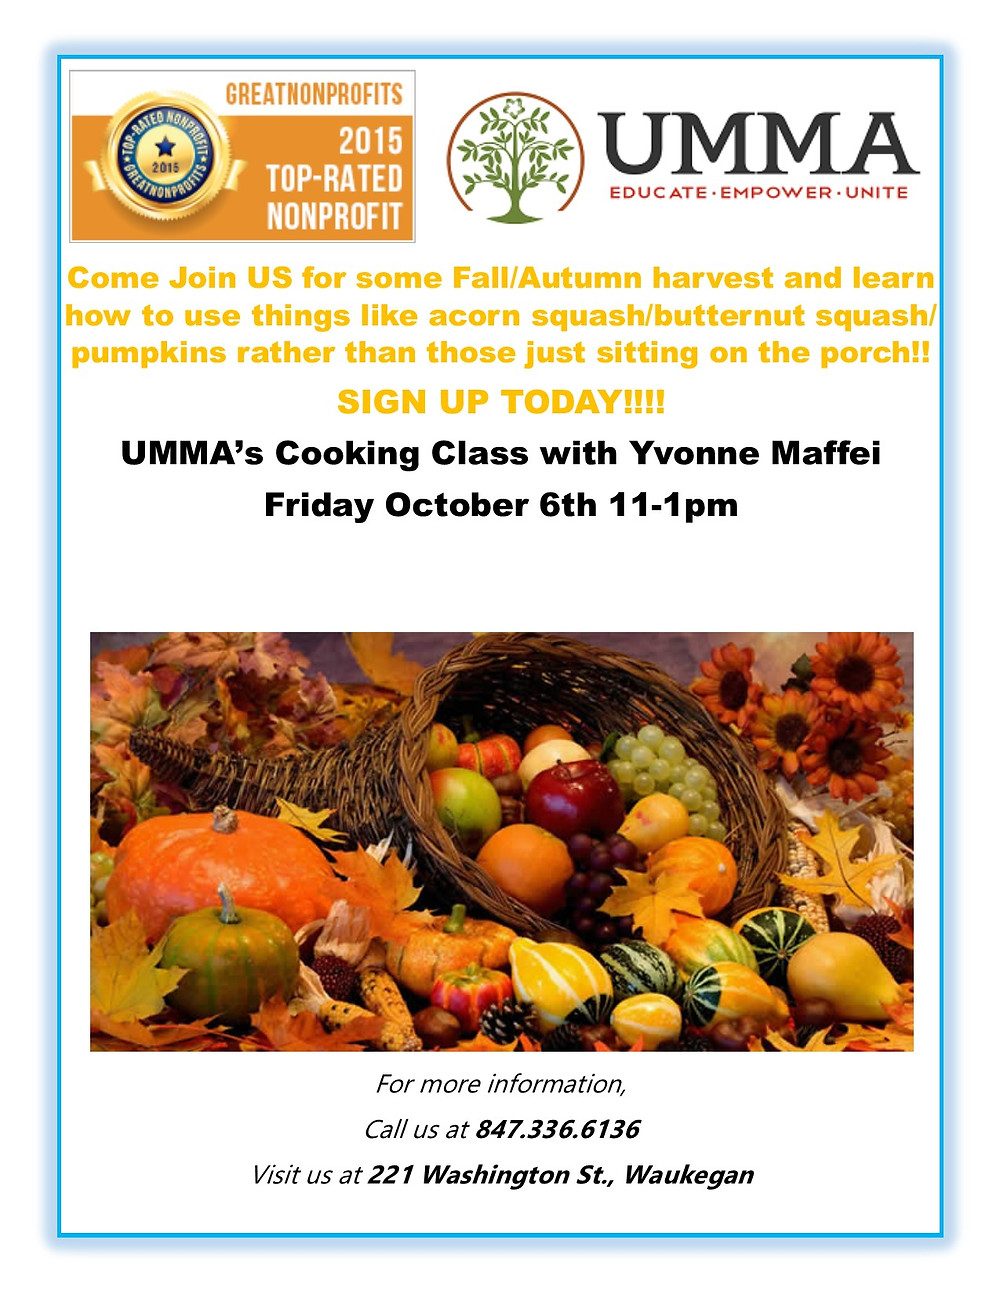 Come Join UMMA for some Fall weather cooking!!!